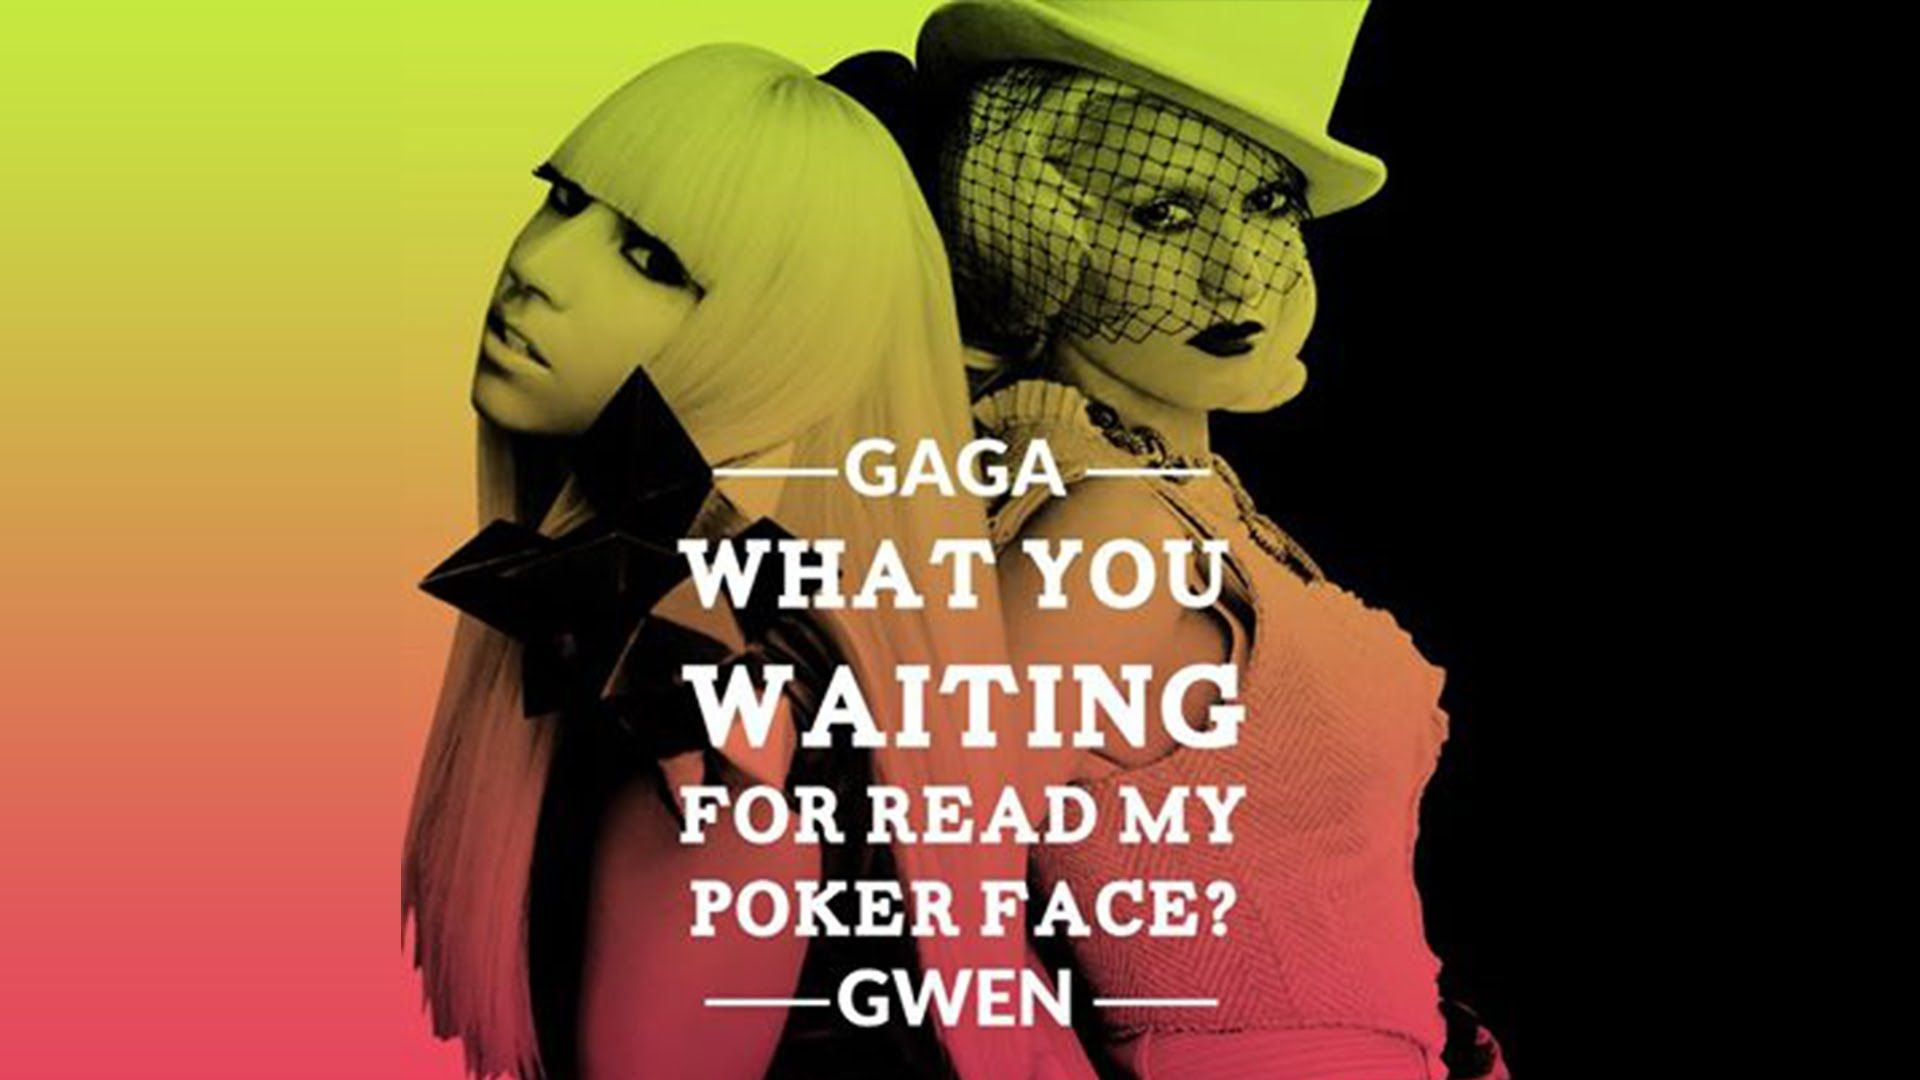 Lady Gaga Vs Gwen Stefani What You Waiting For Ready My Poker Face Mashup Ladygaga Gwenstefani Mashup Remix Poker Face Lady Gaga Gaga